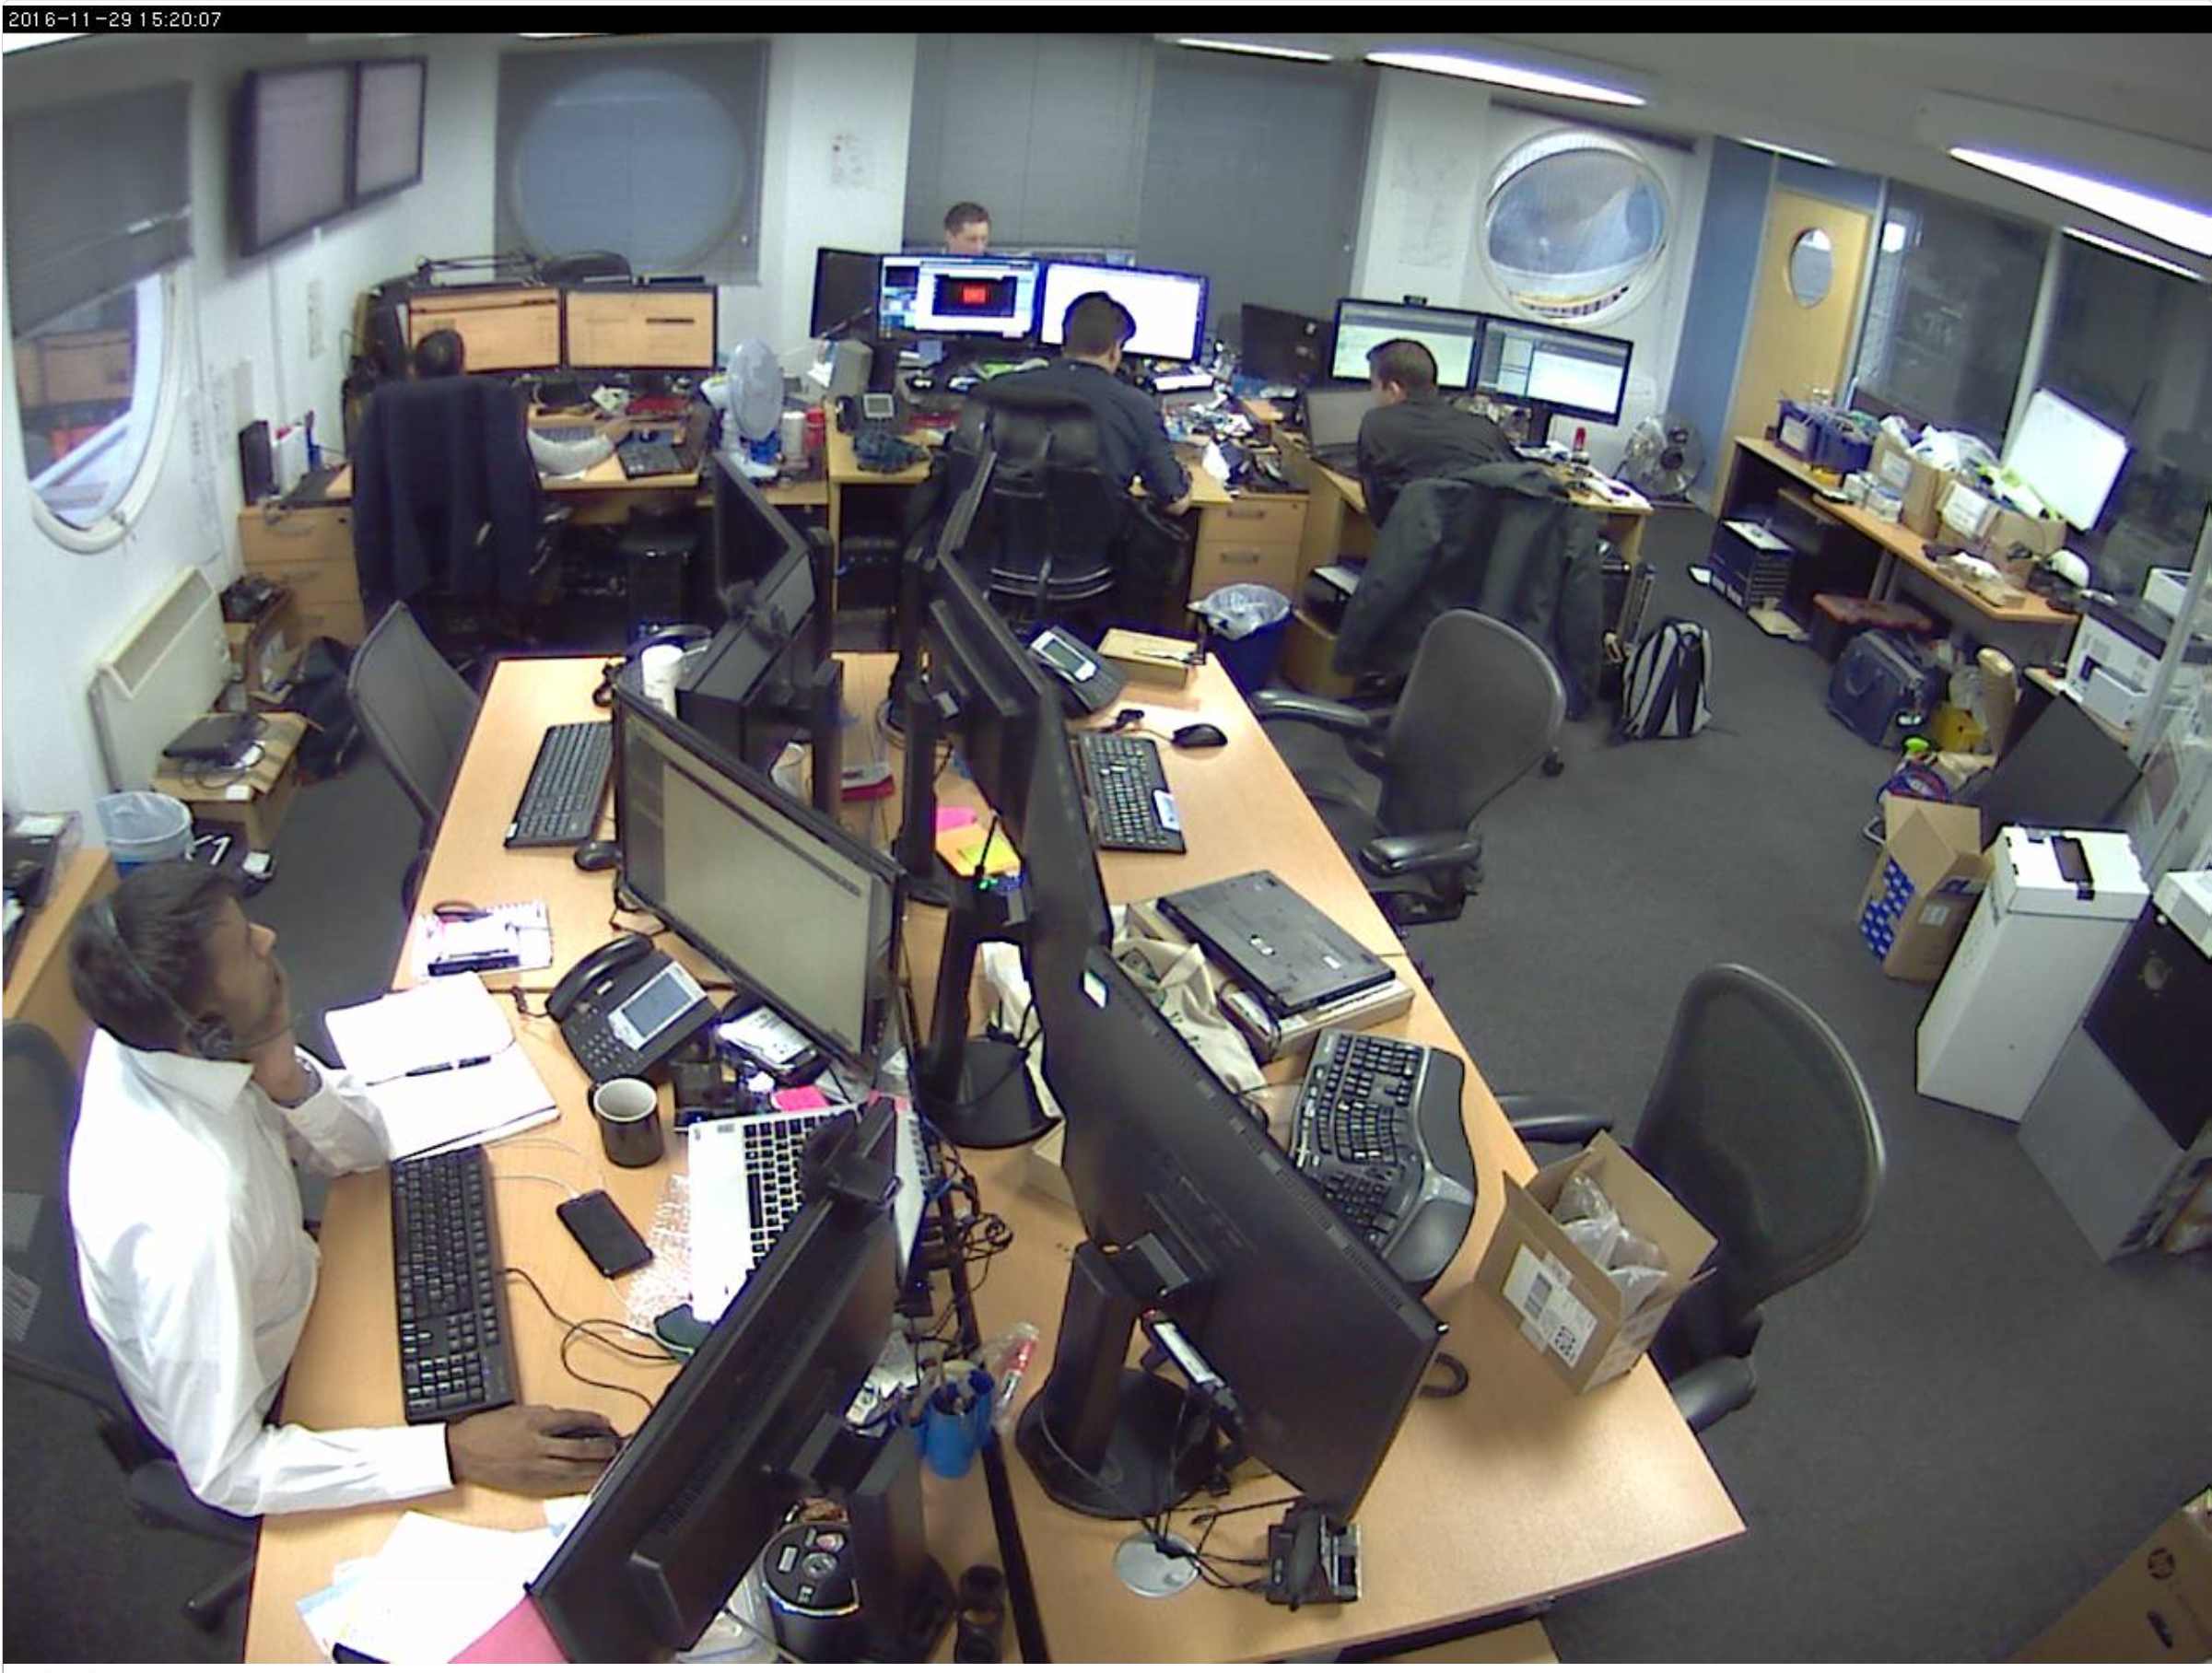 An average afternoon in the office. Some of us will likely be in and others out onsite (during UK office daytime) - feel free to click through and stalk us live.